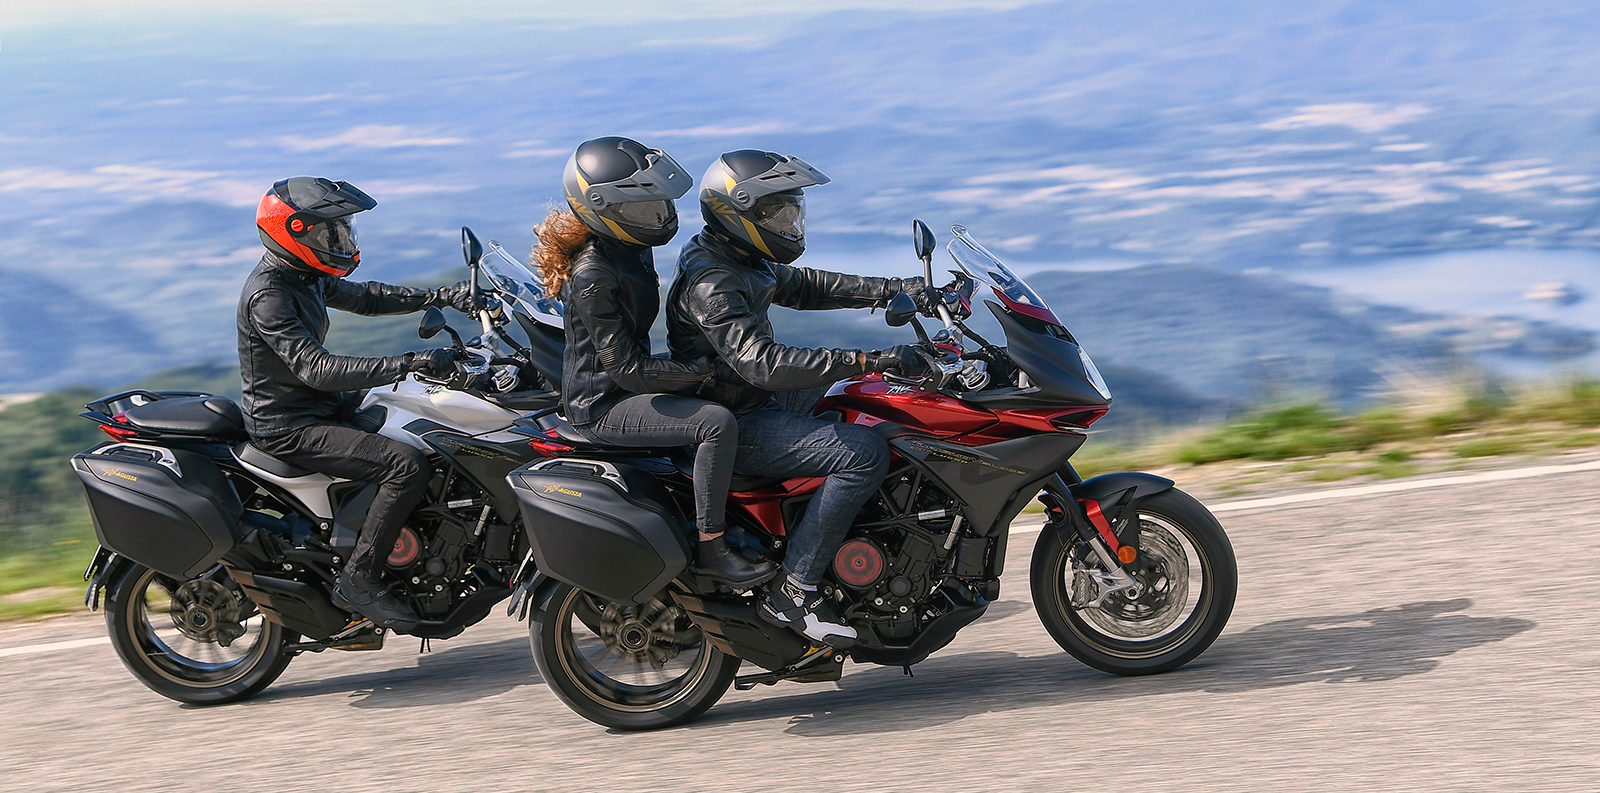 two mv agusta turismo veloce lusso motorcycles riding with three riders